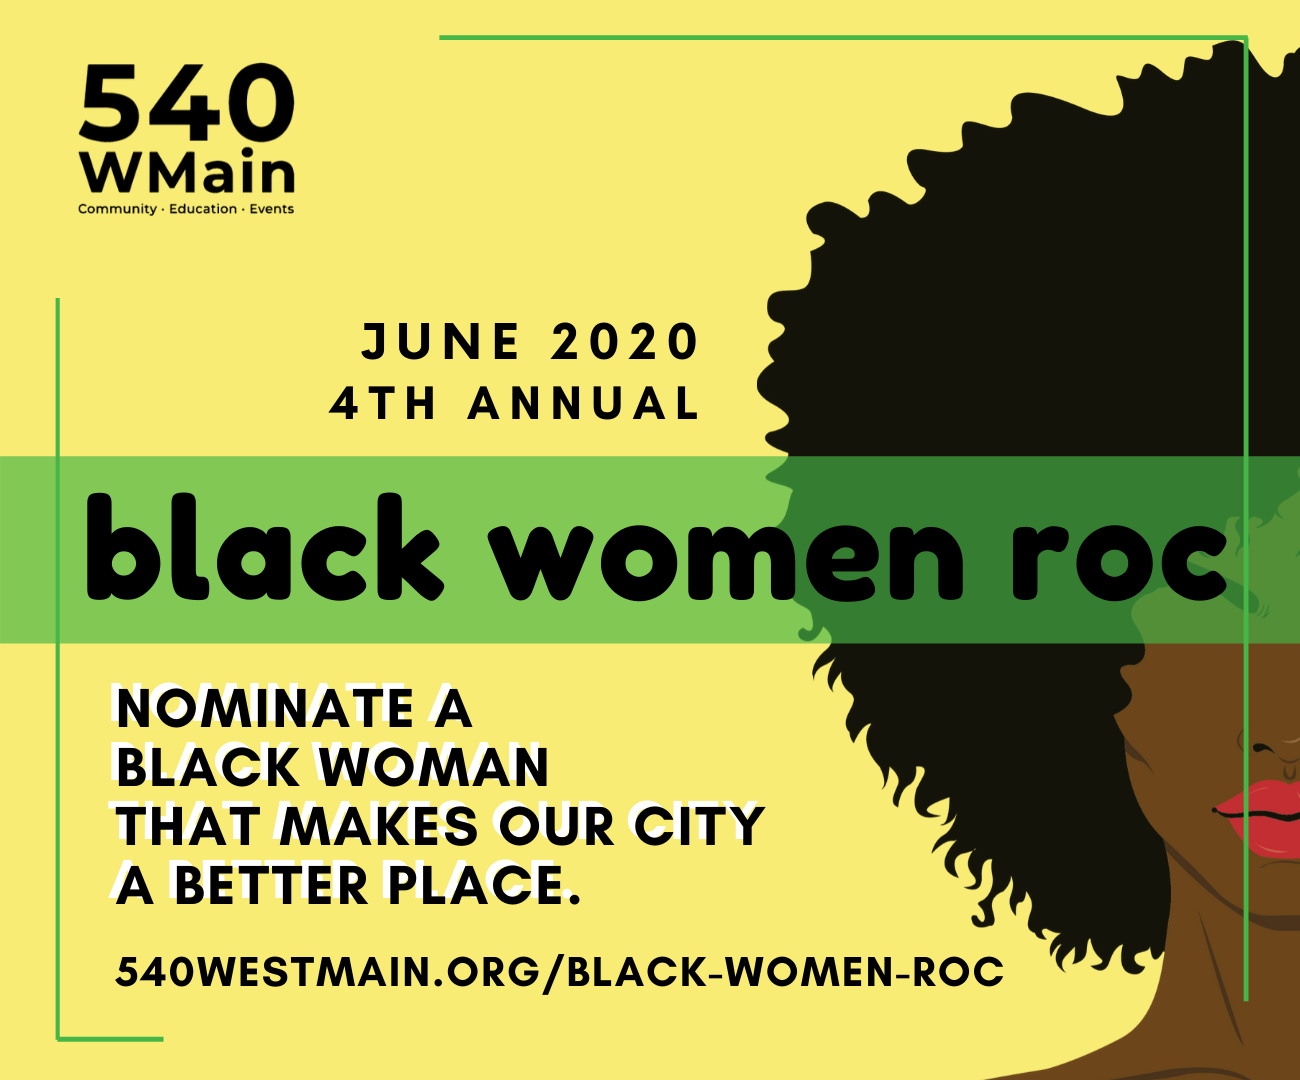 black women roc 2020